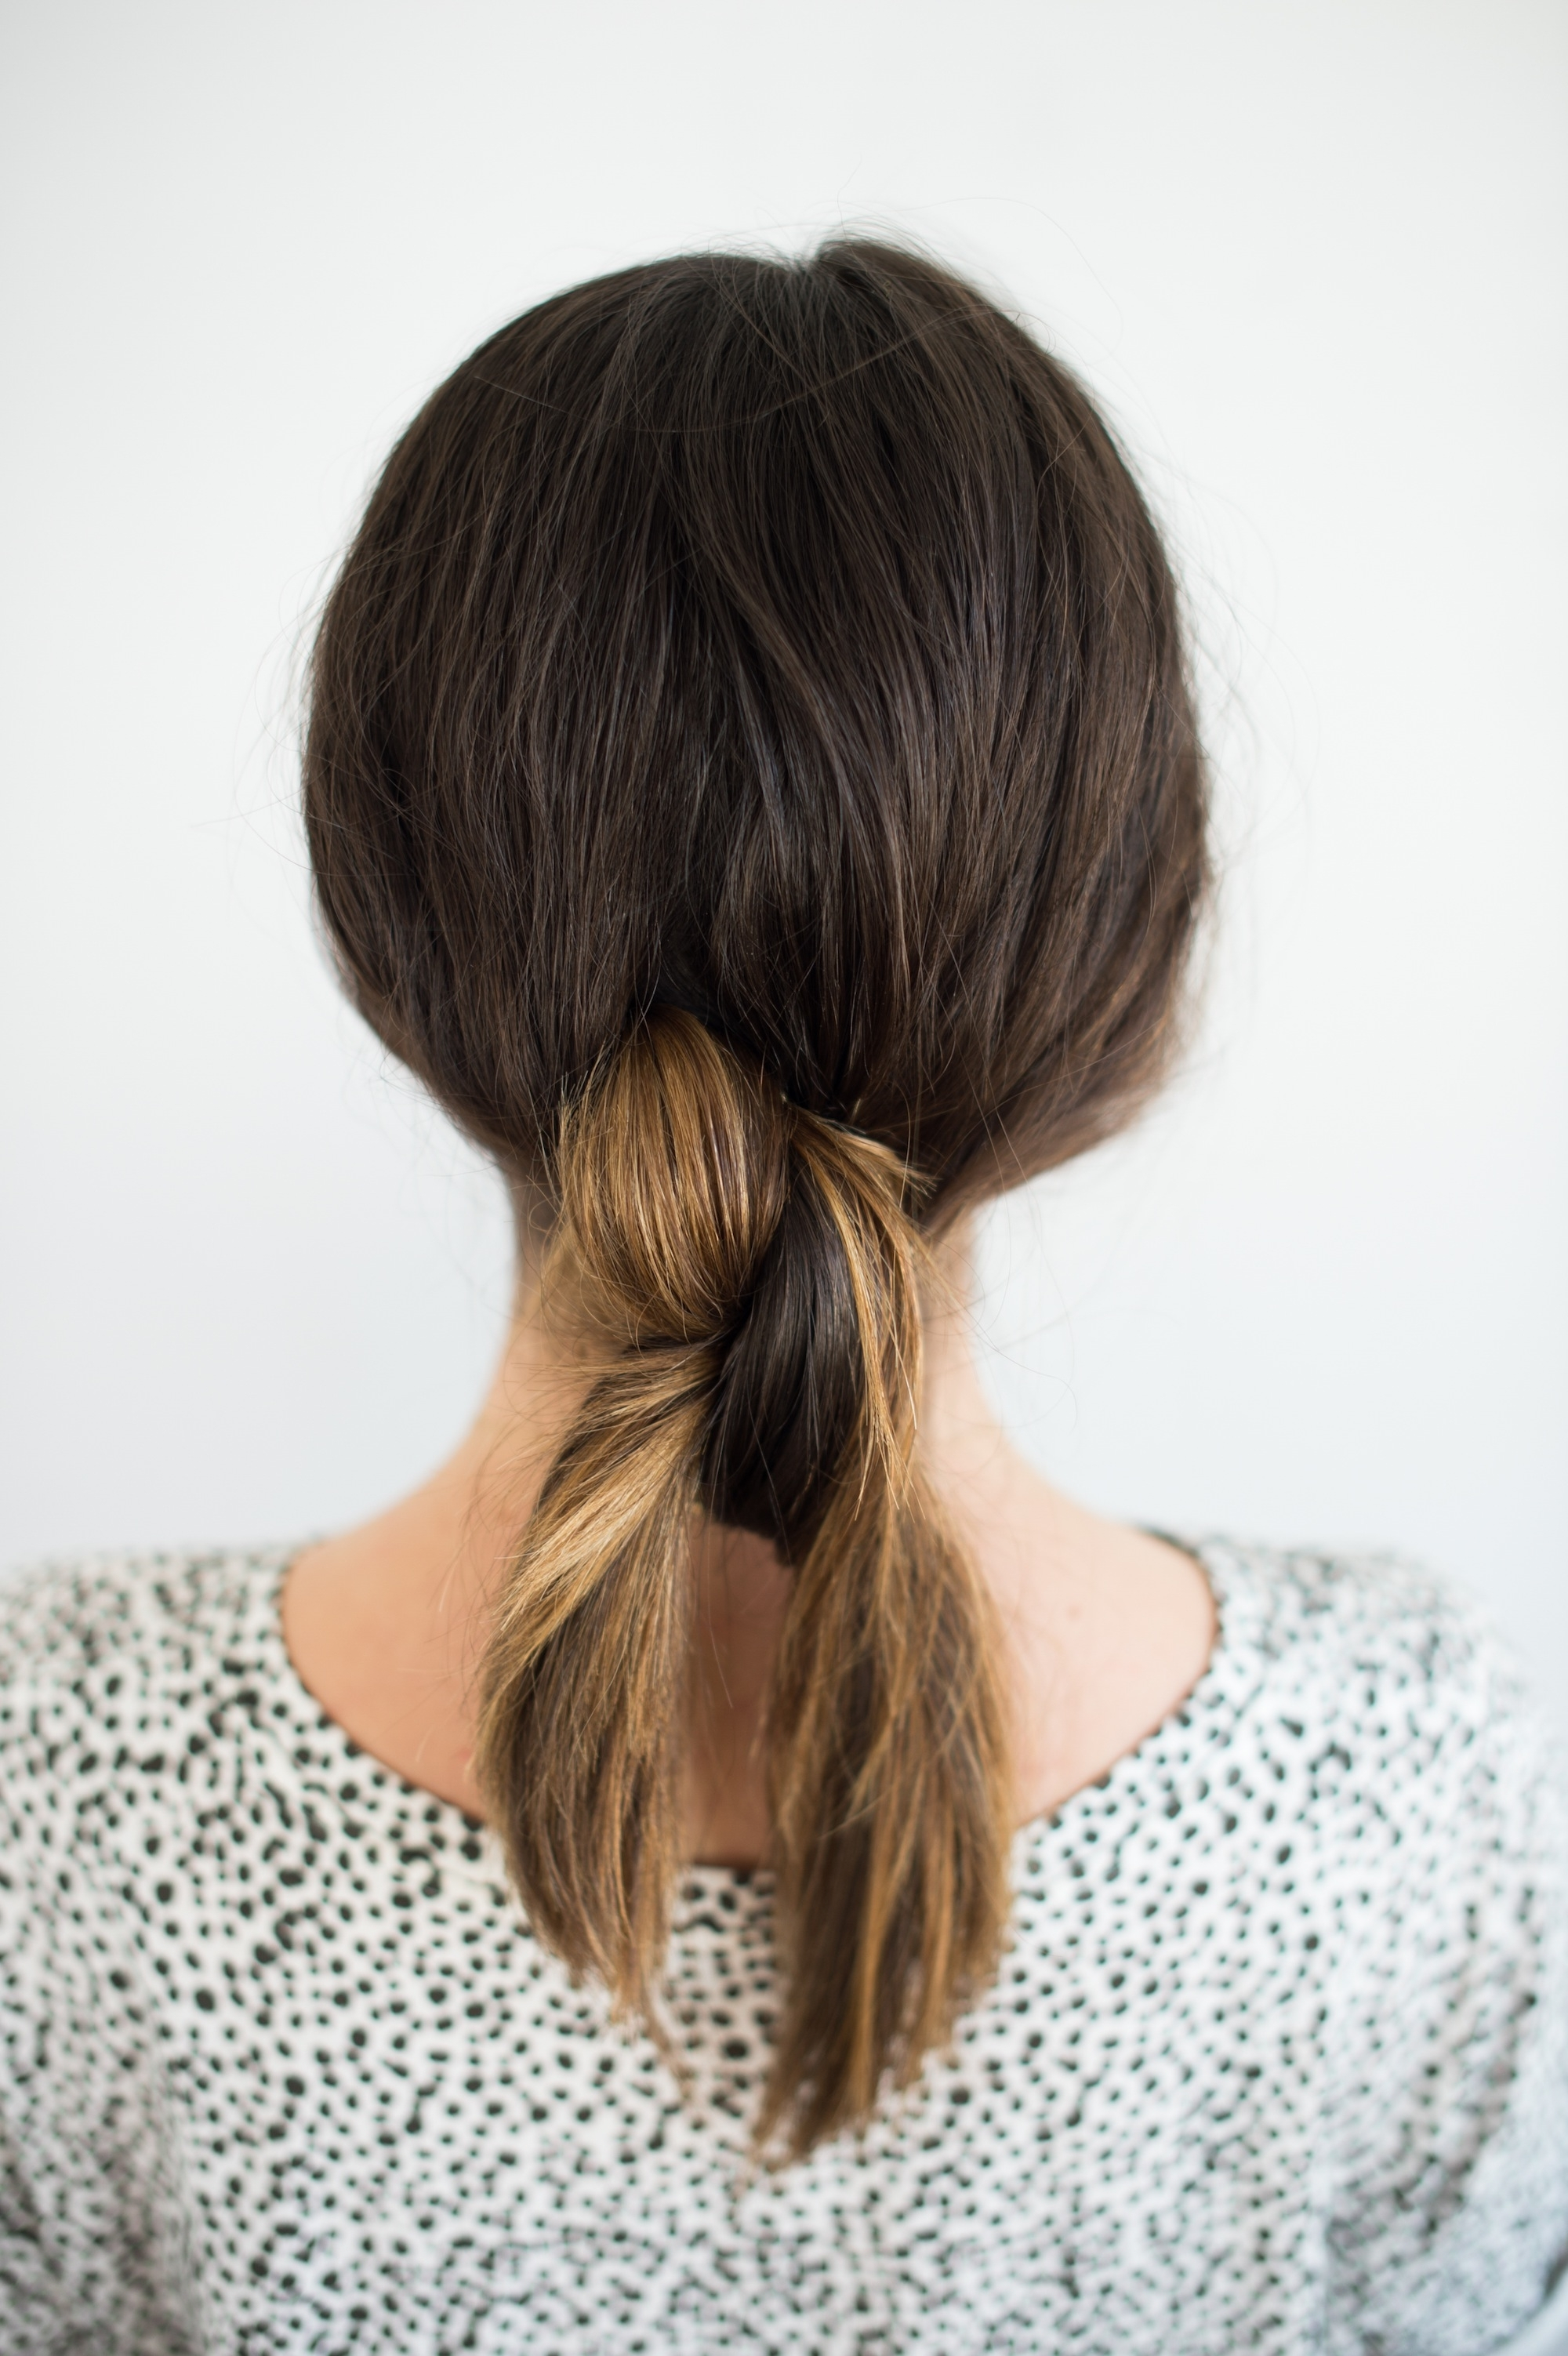 Hair Tutorial // The Double Knotted Pony – The Effortless Chic In Newest Knotted Ponytail Hairstyles (View 11 of 20)